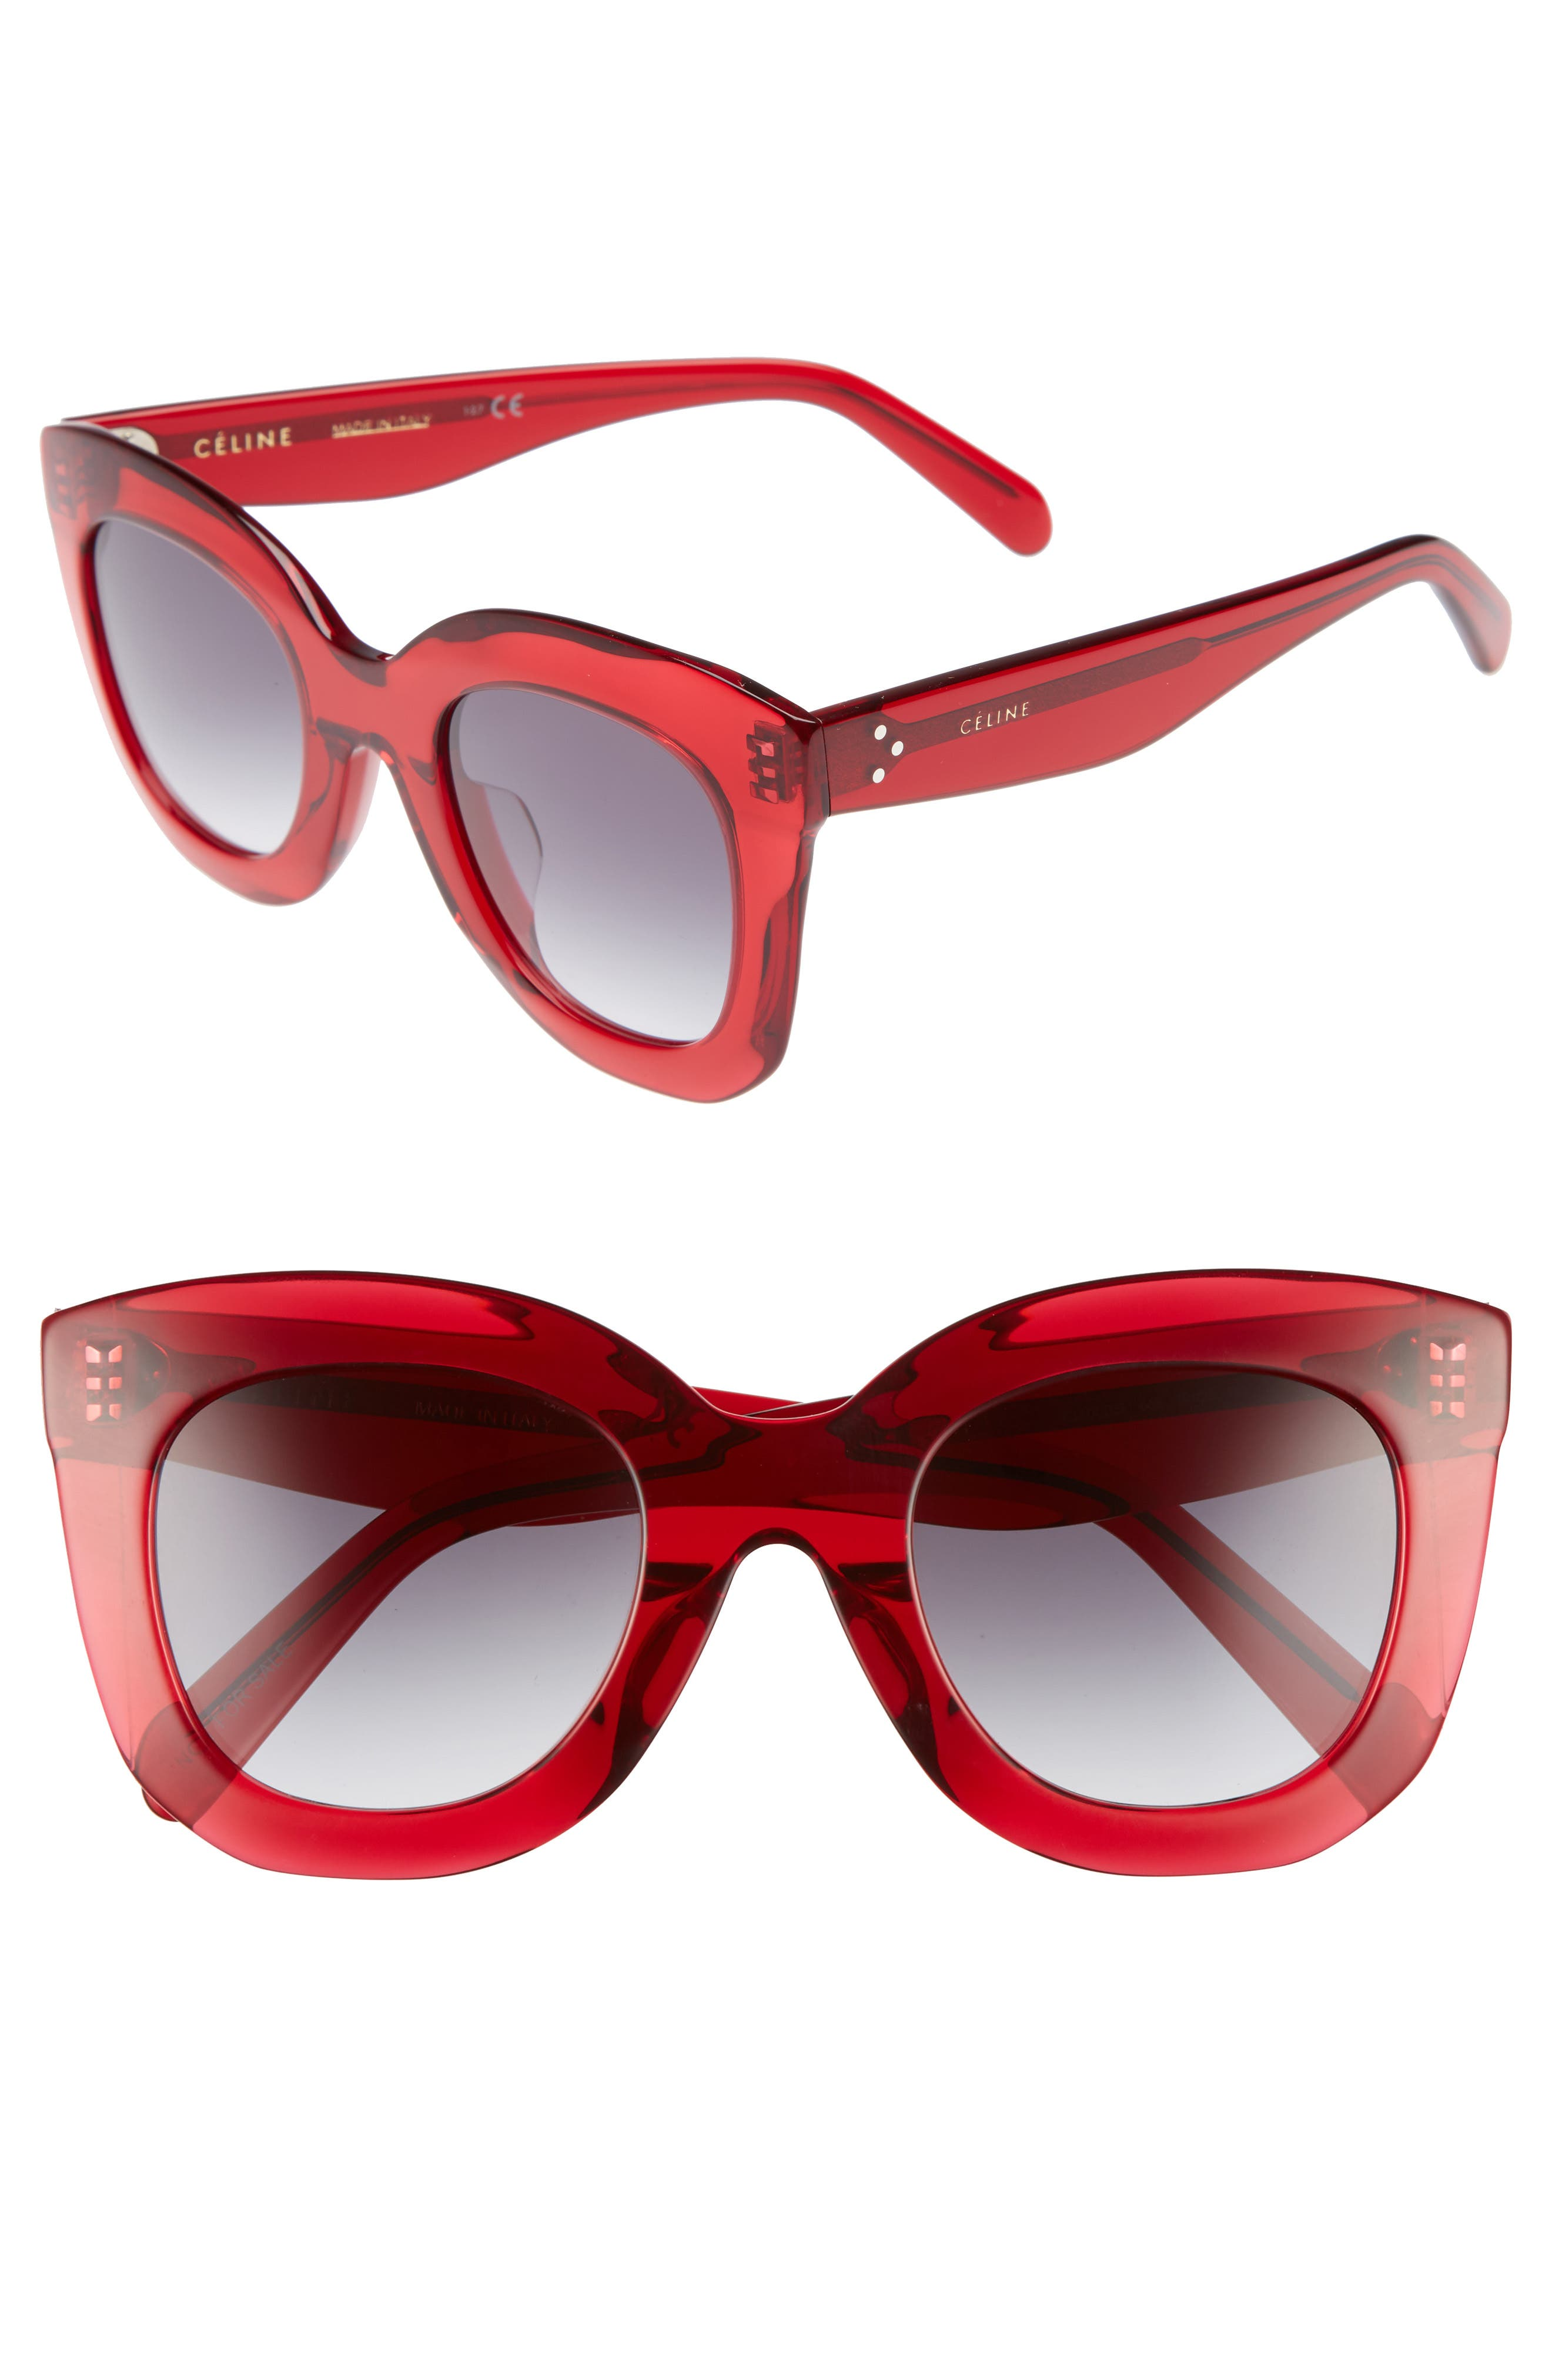 Special Fit 49mm Cat Eye Sunglasses,                         Main,                         color, Red/ Smoke